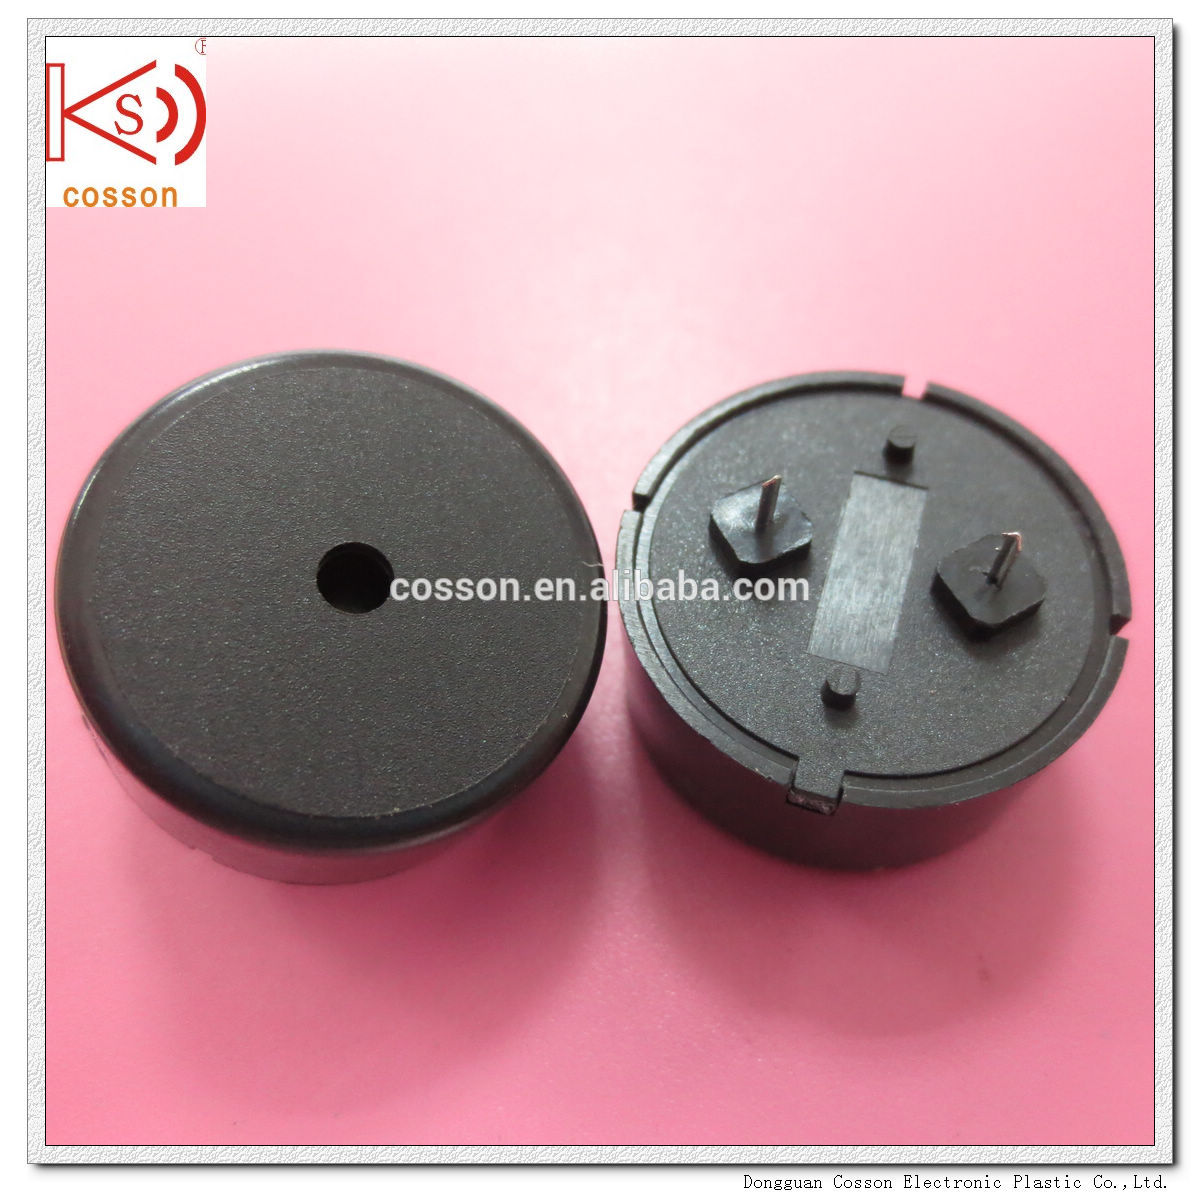 17mm piezoelectric buzzer (passive buzzer type)